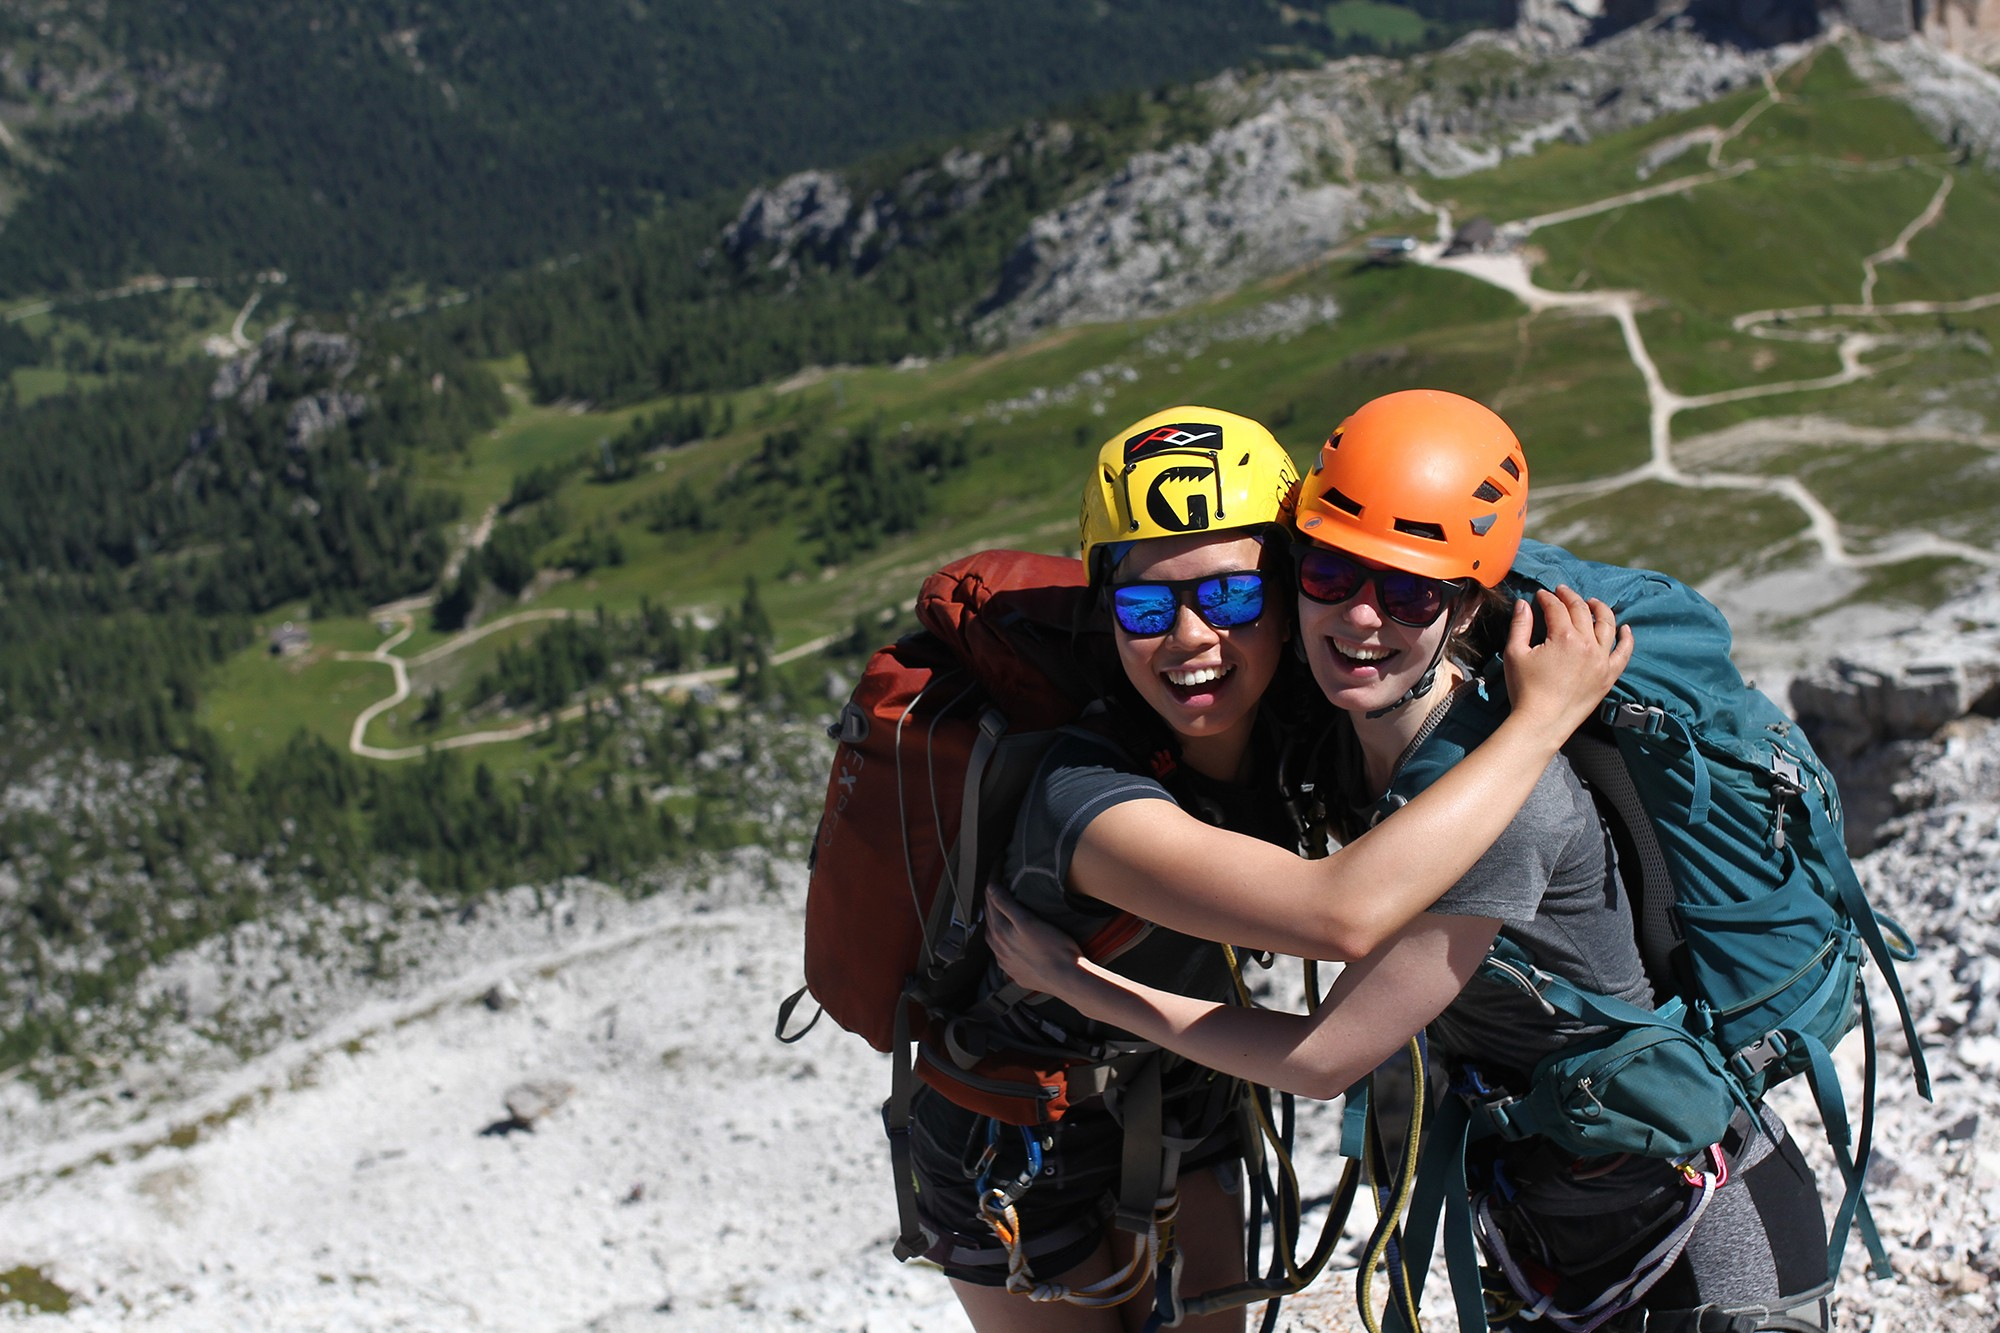 Jessie leong and Emma Bryning hug at the top of Averau, a via ferrata route in The Dolomites